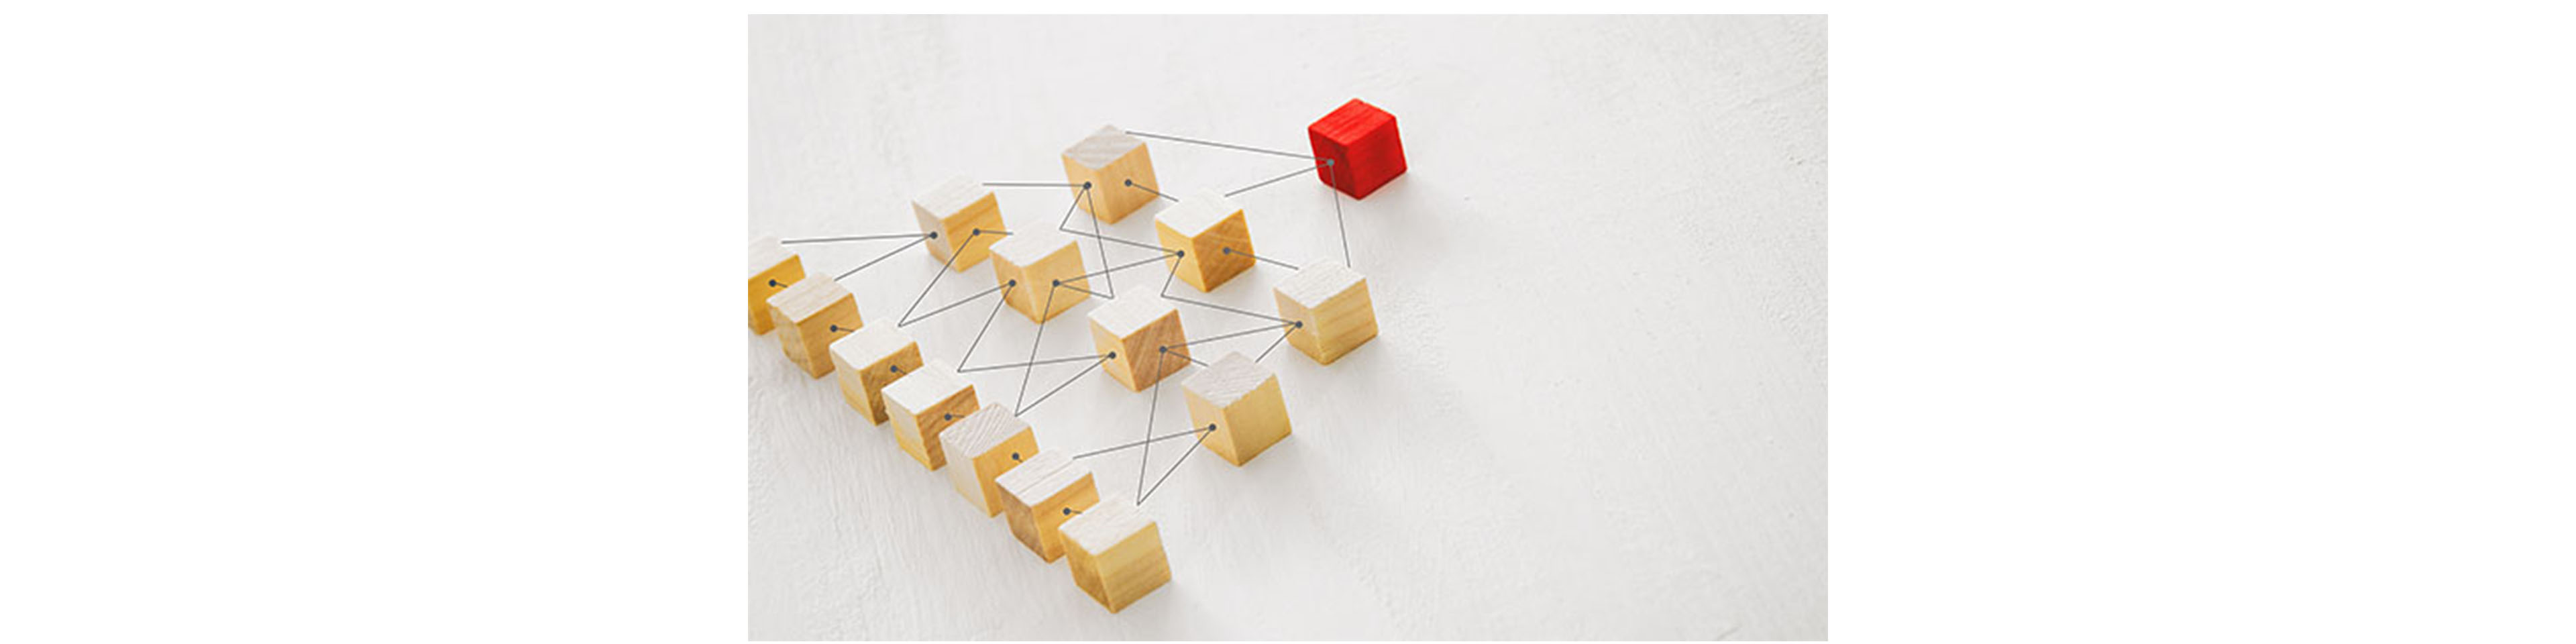 The Series LLC: An Organizational Structure that Can Help Mitigate Risk